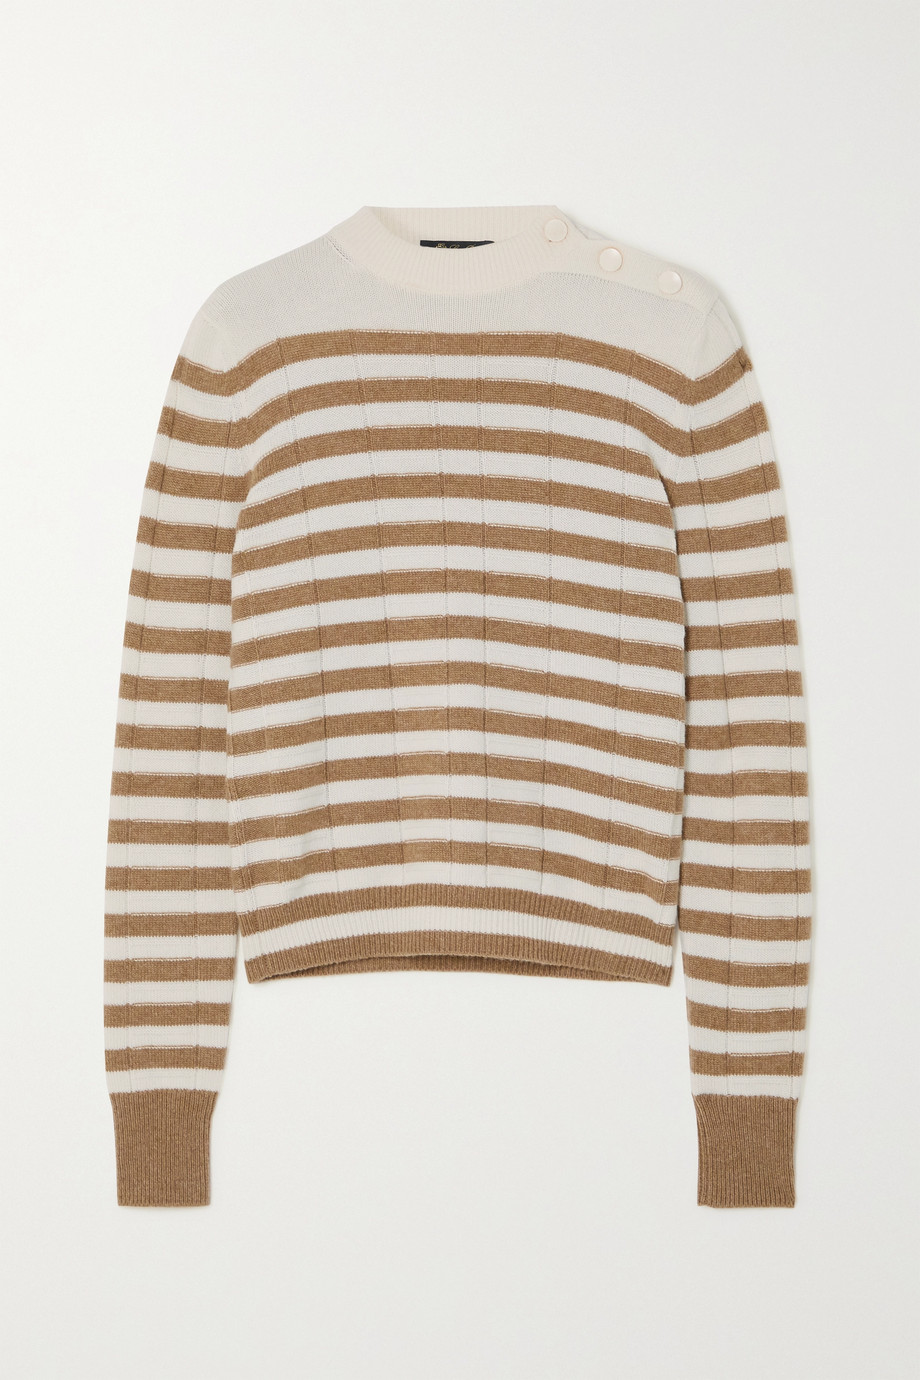 Loro Piana Button-detailed striped cashmere sweater